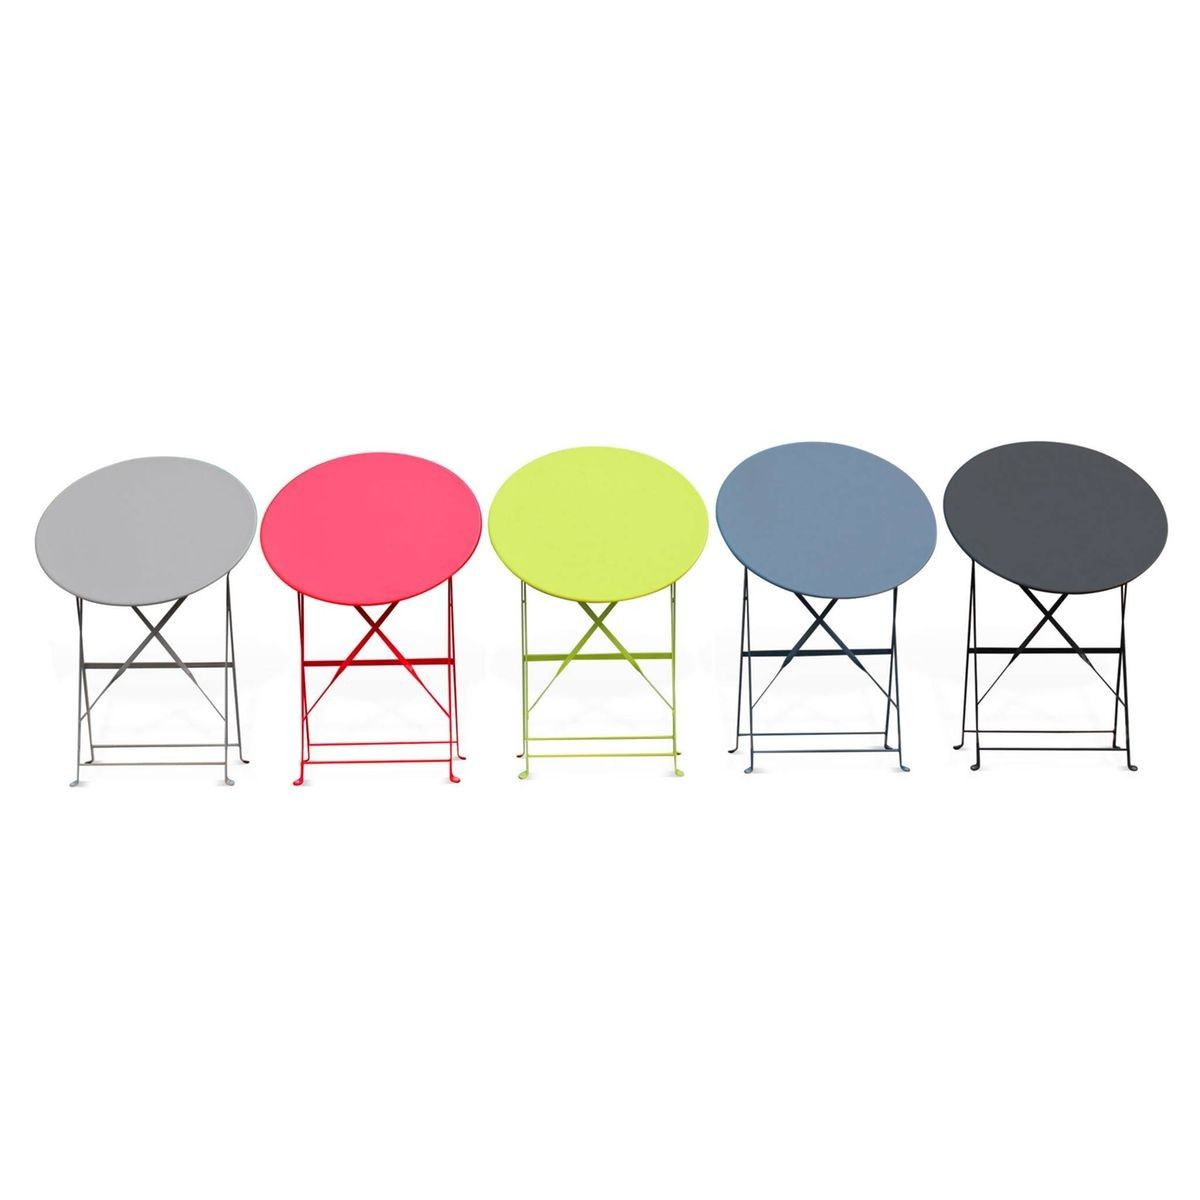 Table de jardin bistrot pliable - Emilia ronde verte- Table ...